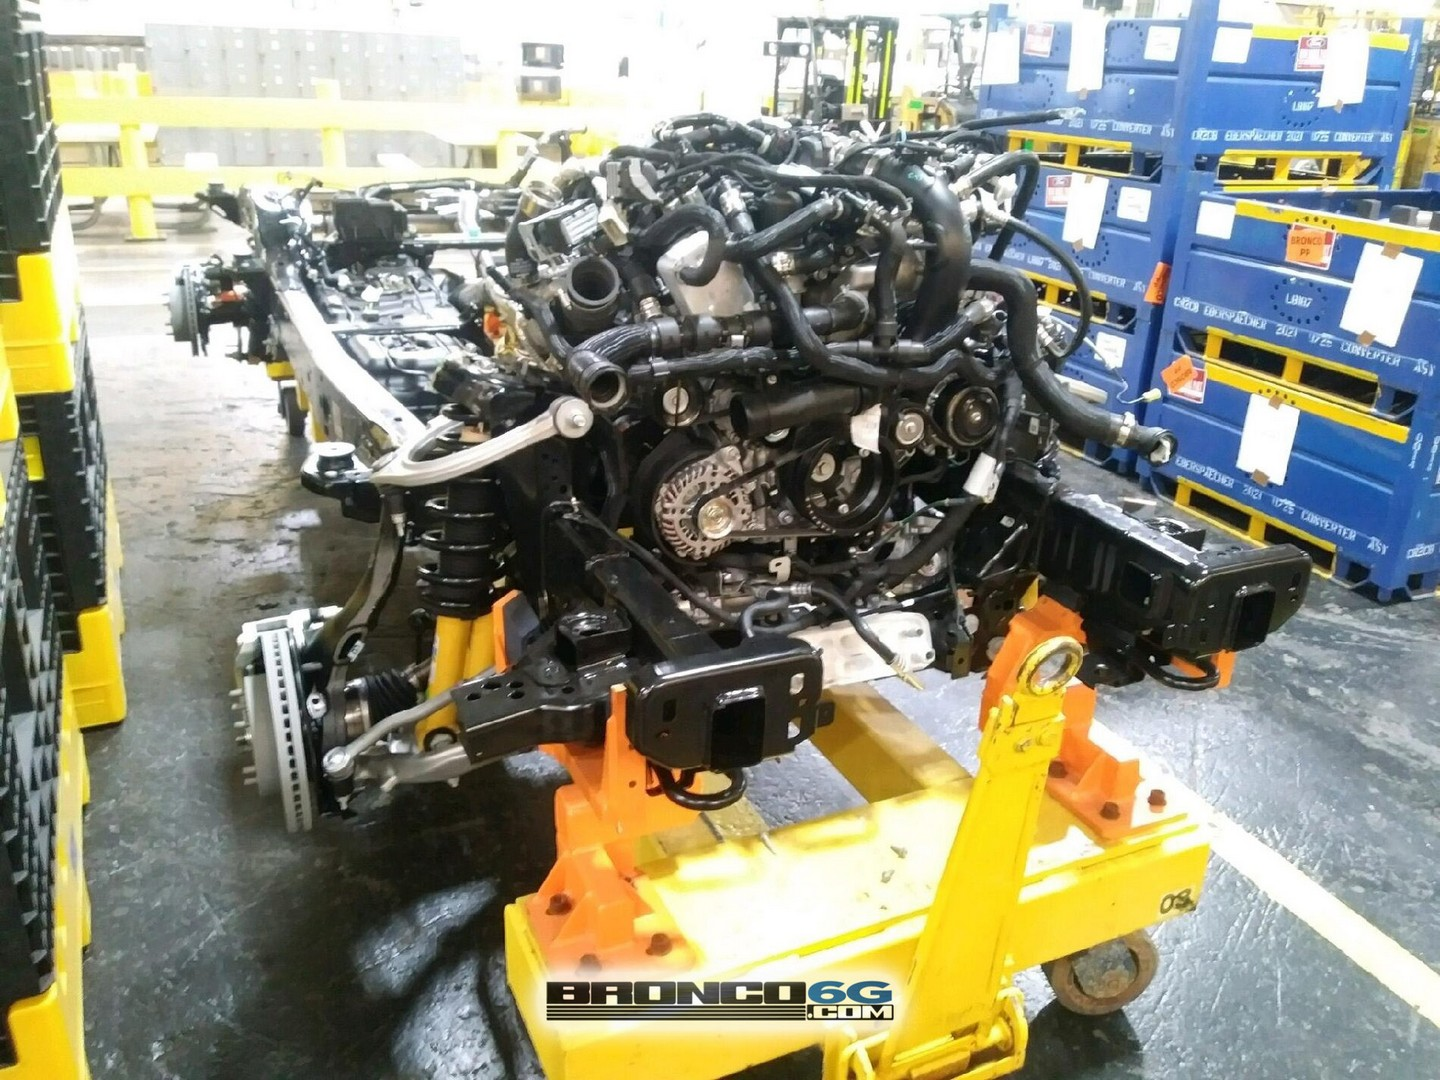 2021-ford-bronco-shows-engine-octopus-in-factory-close-ups-of-chassis-goodies-154172_1.jpg